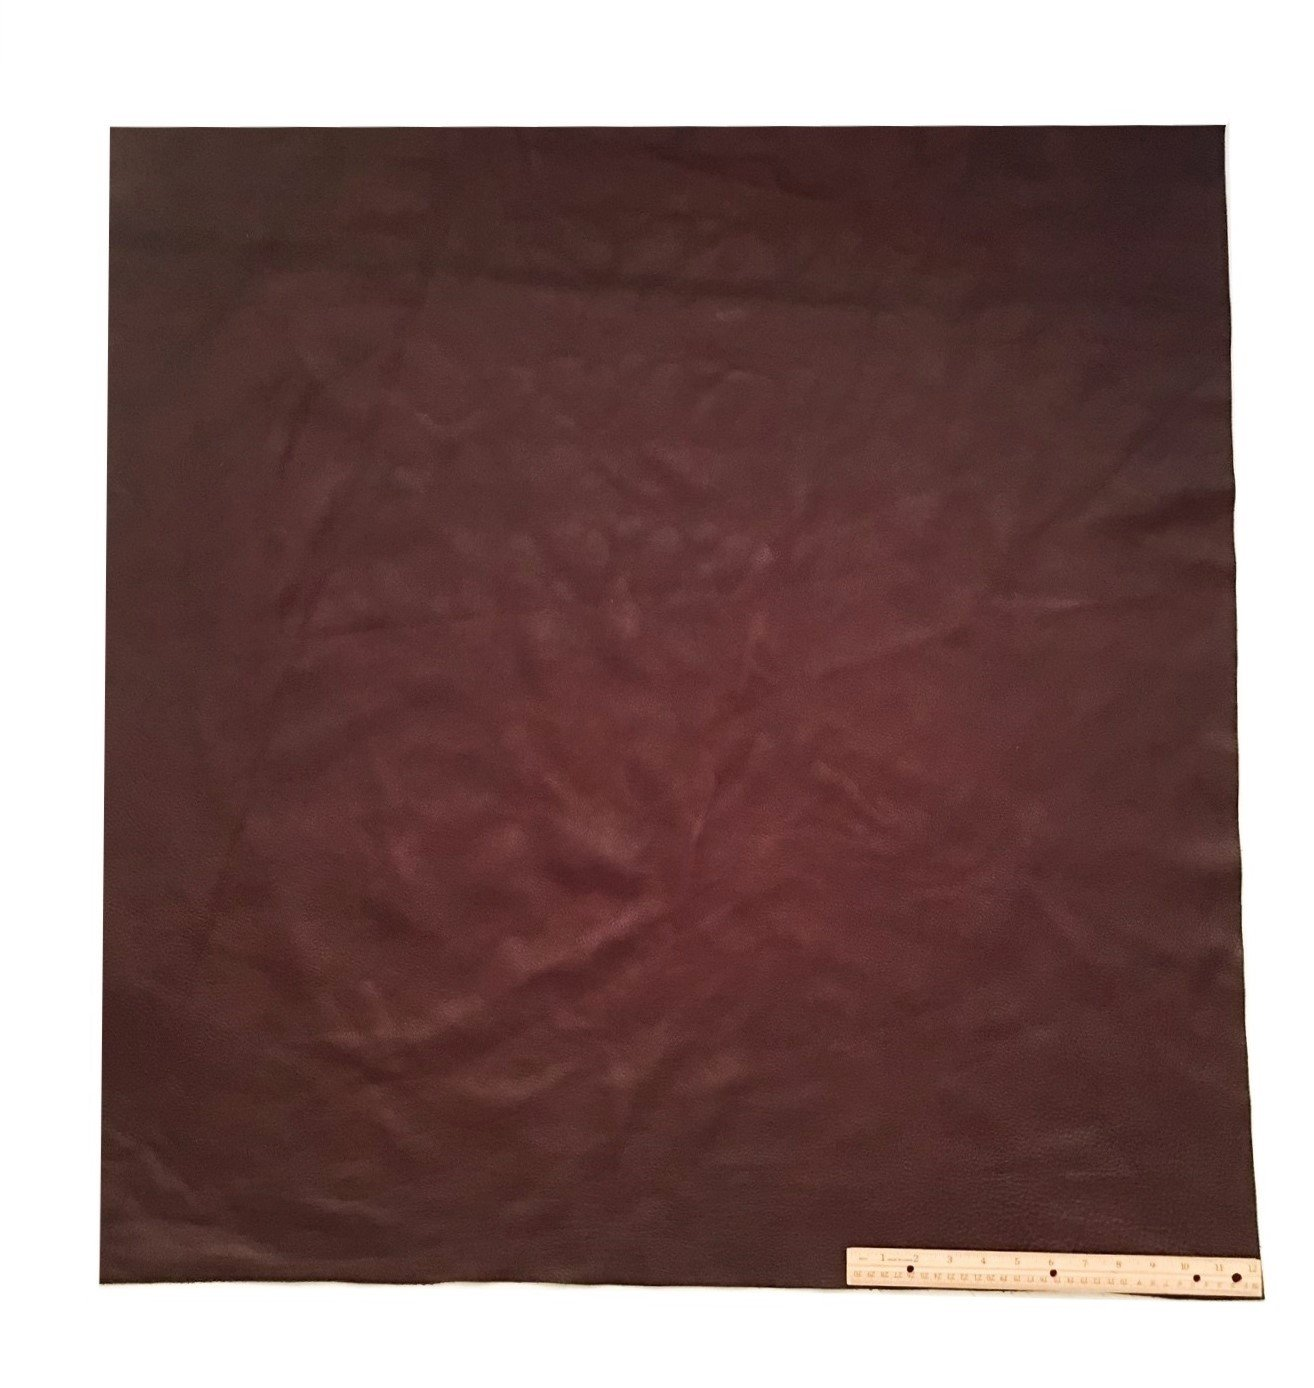 Upholstery Leather Piece Cowhide Dark Brown Light Weight 36 X 36 Inches, 9 Square Feet